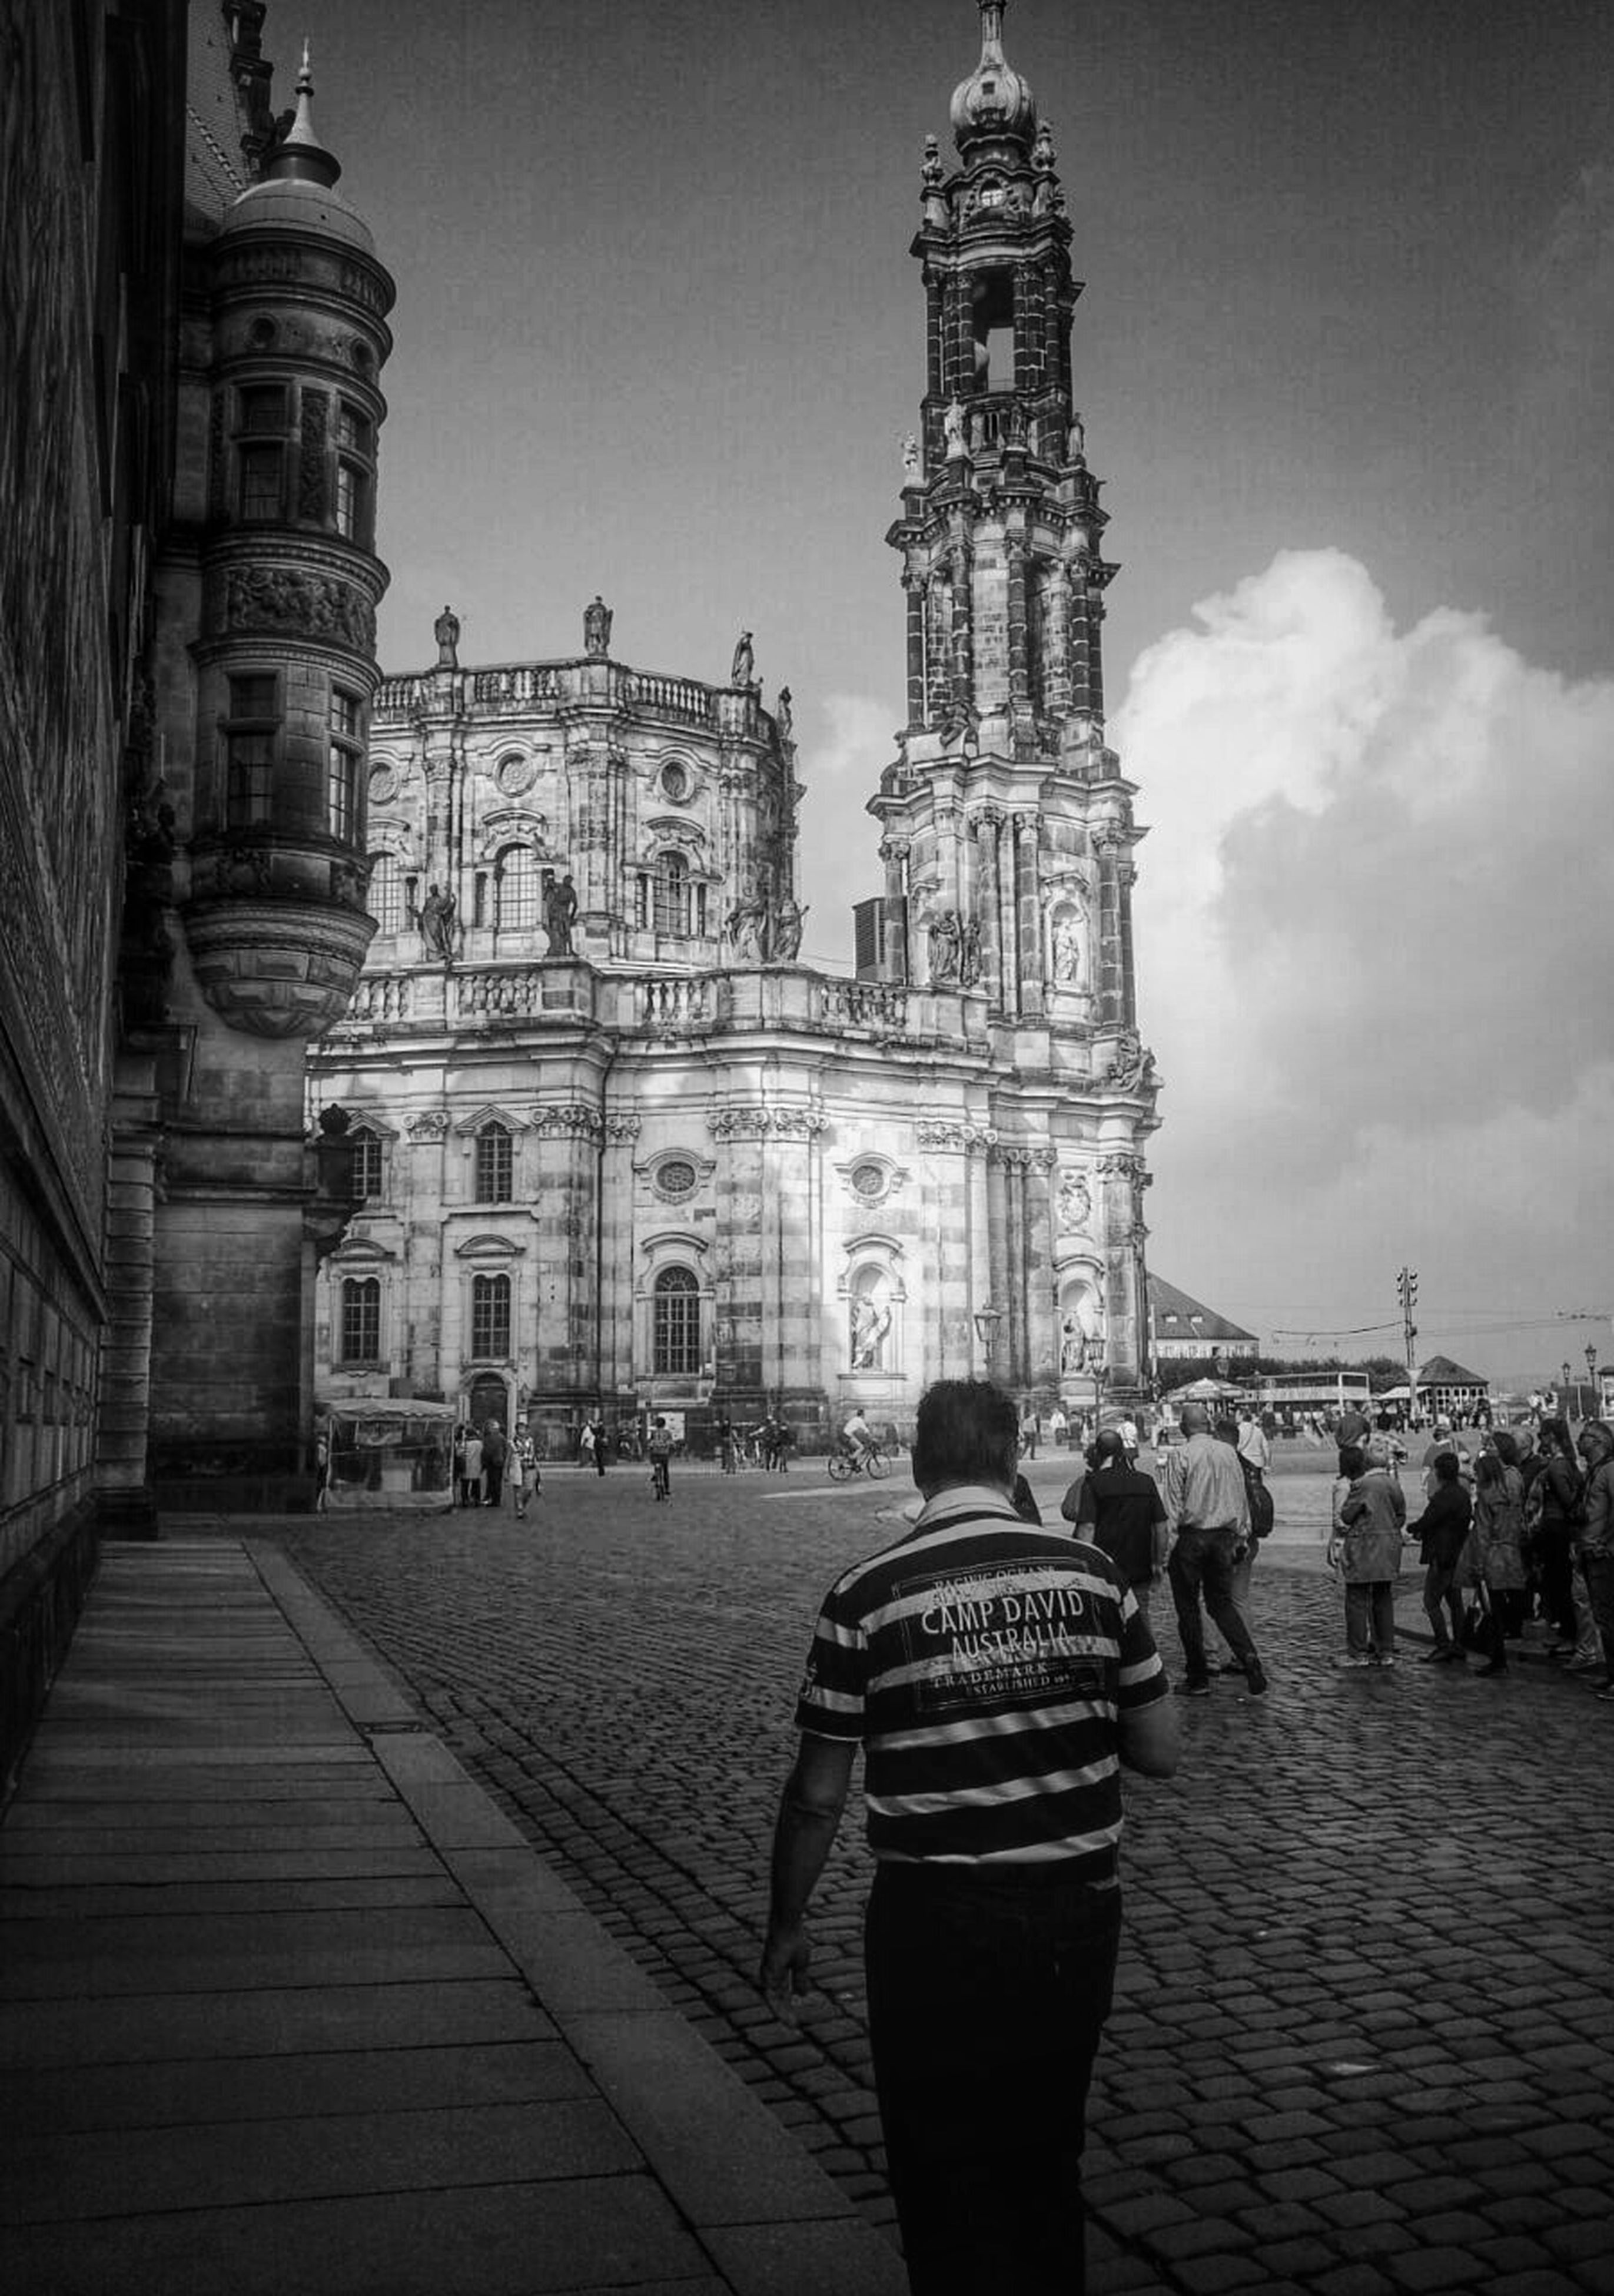 architecture, building exterior, built structure, men, street, walking, sky, lifestyles, person, the way forward, city, place of worship, cobblestone, travel destinations, famous place, religion, travel, history, incidental people